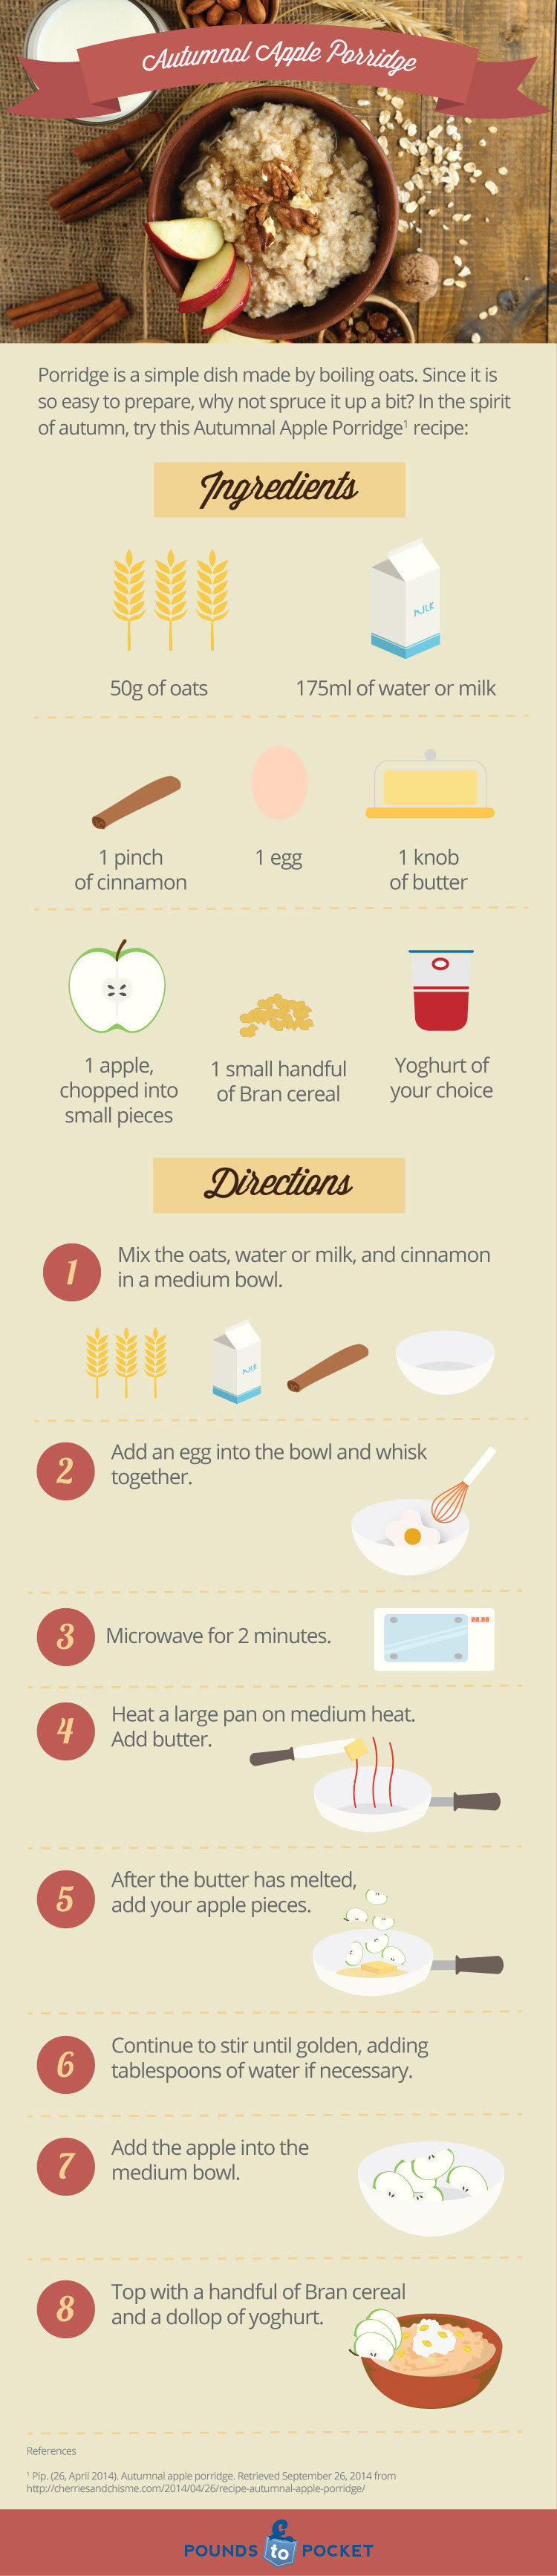 Infographic: Autumnal Apple Porridge